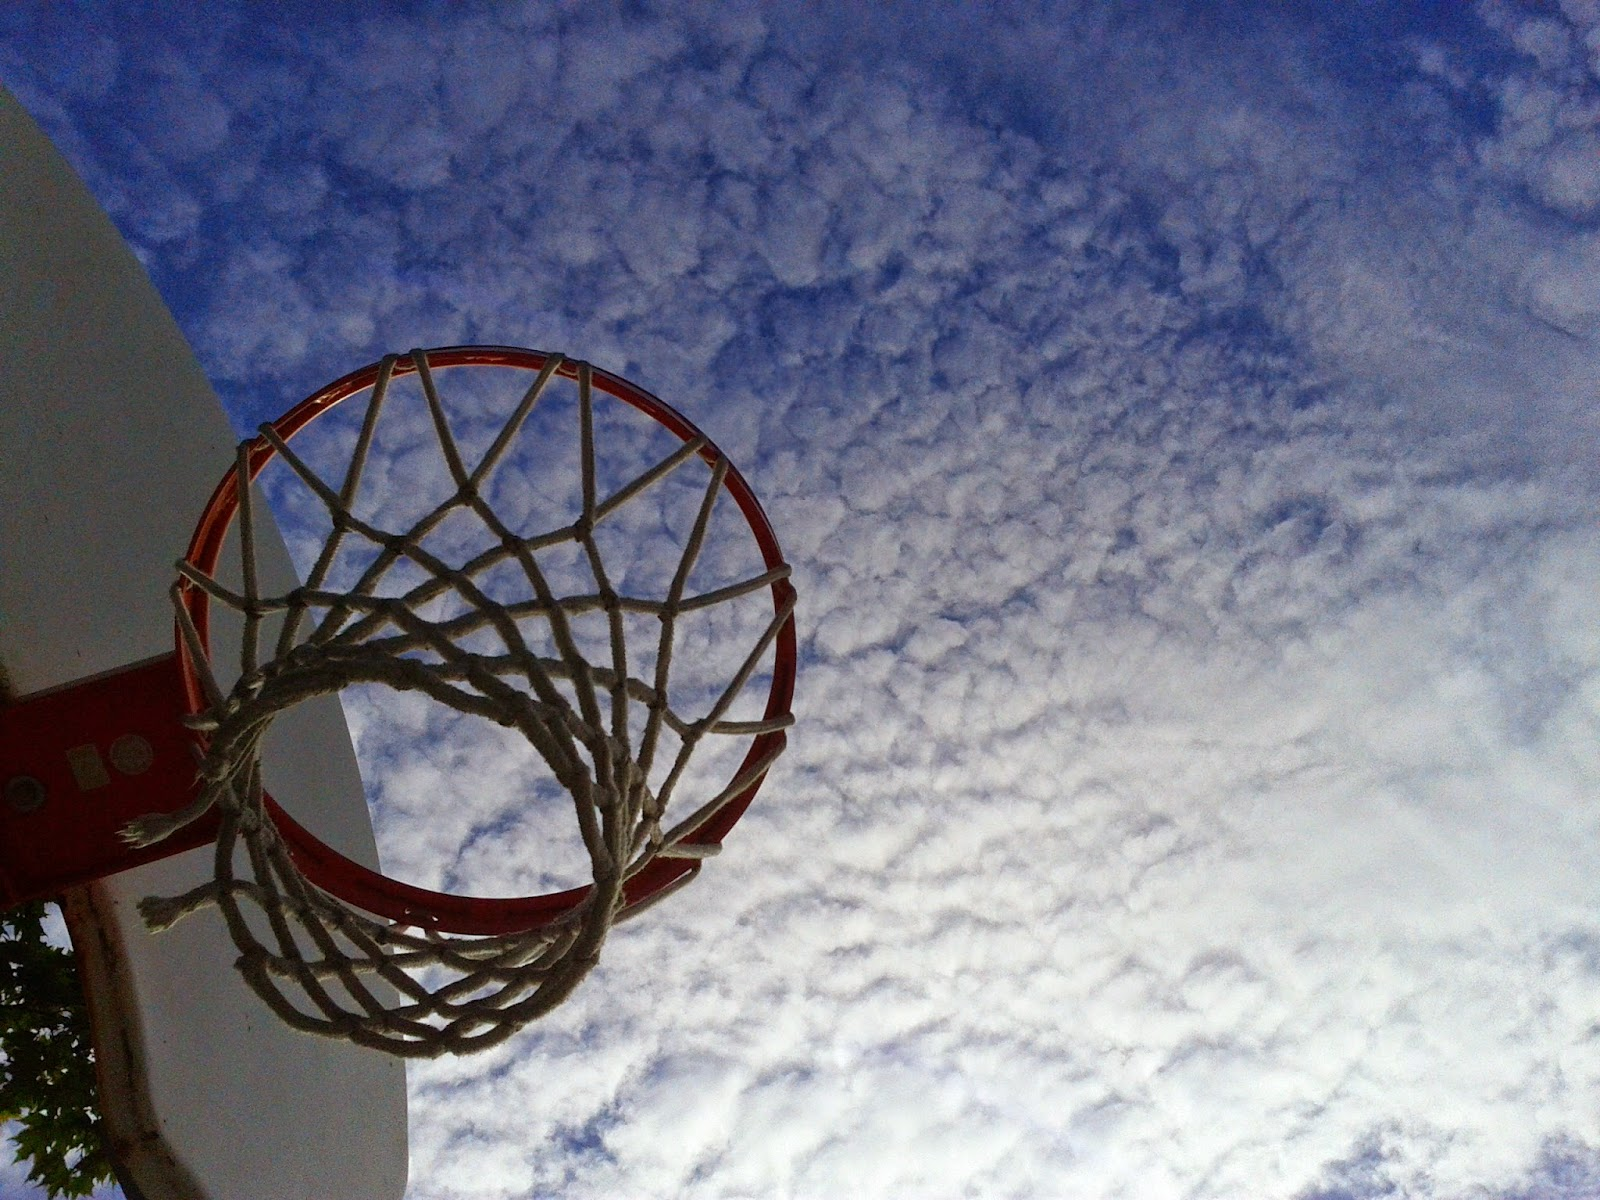 Stock photo: Basketball rim, backboard with clouds in the background (outdoor)